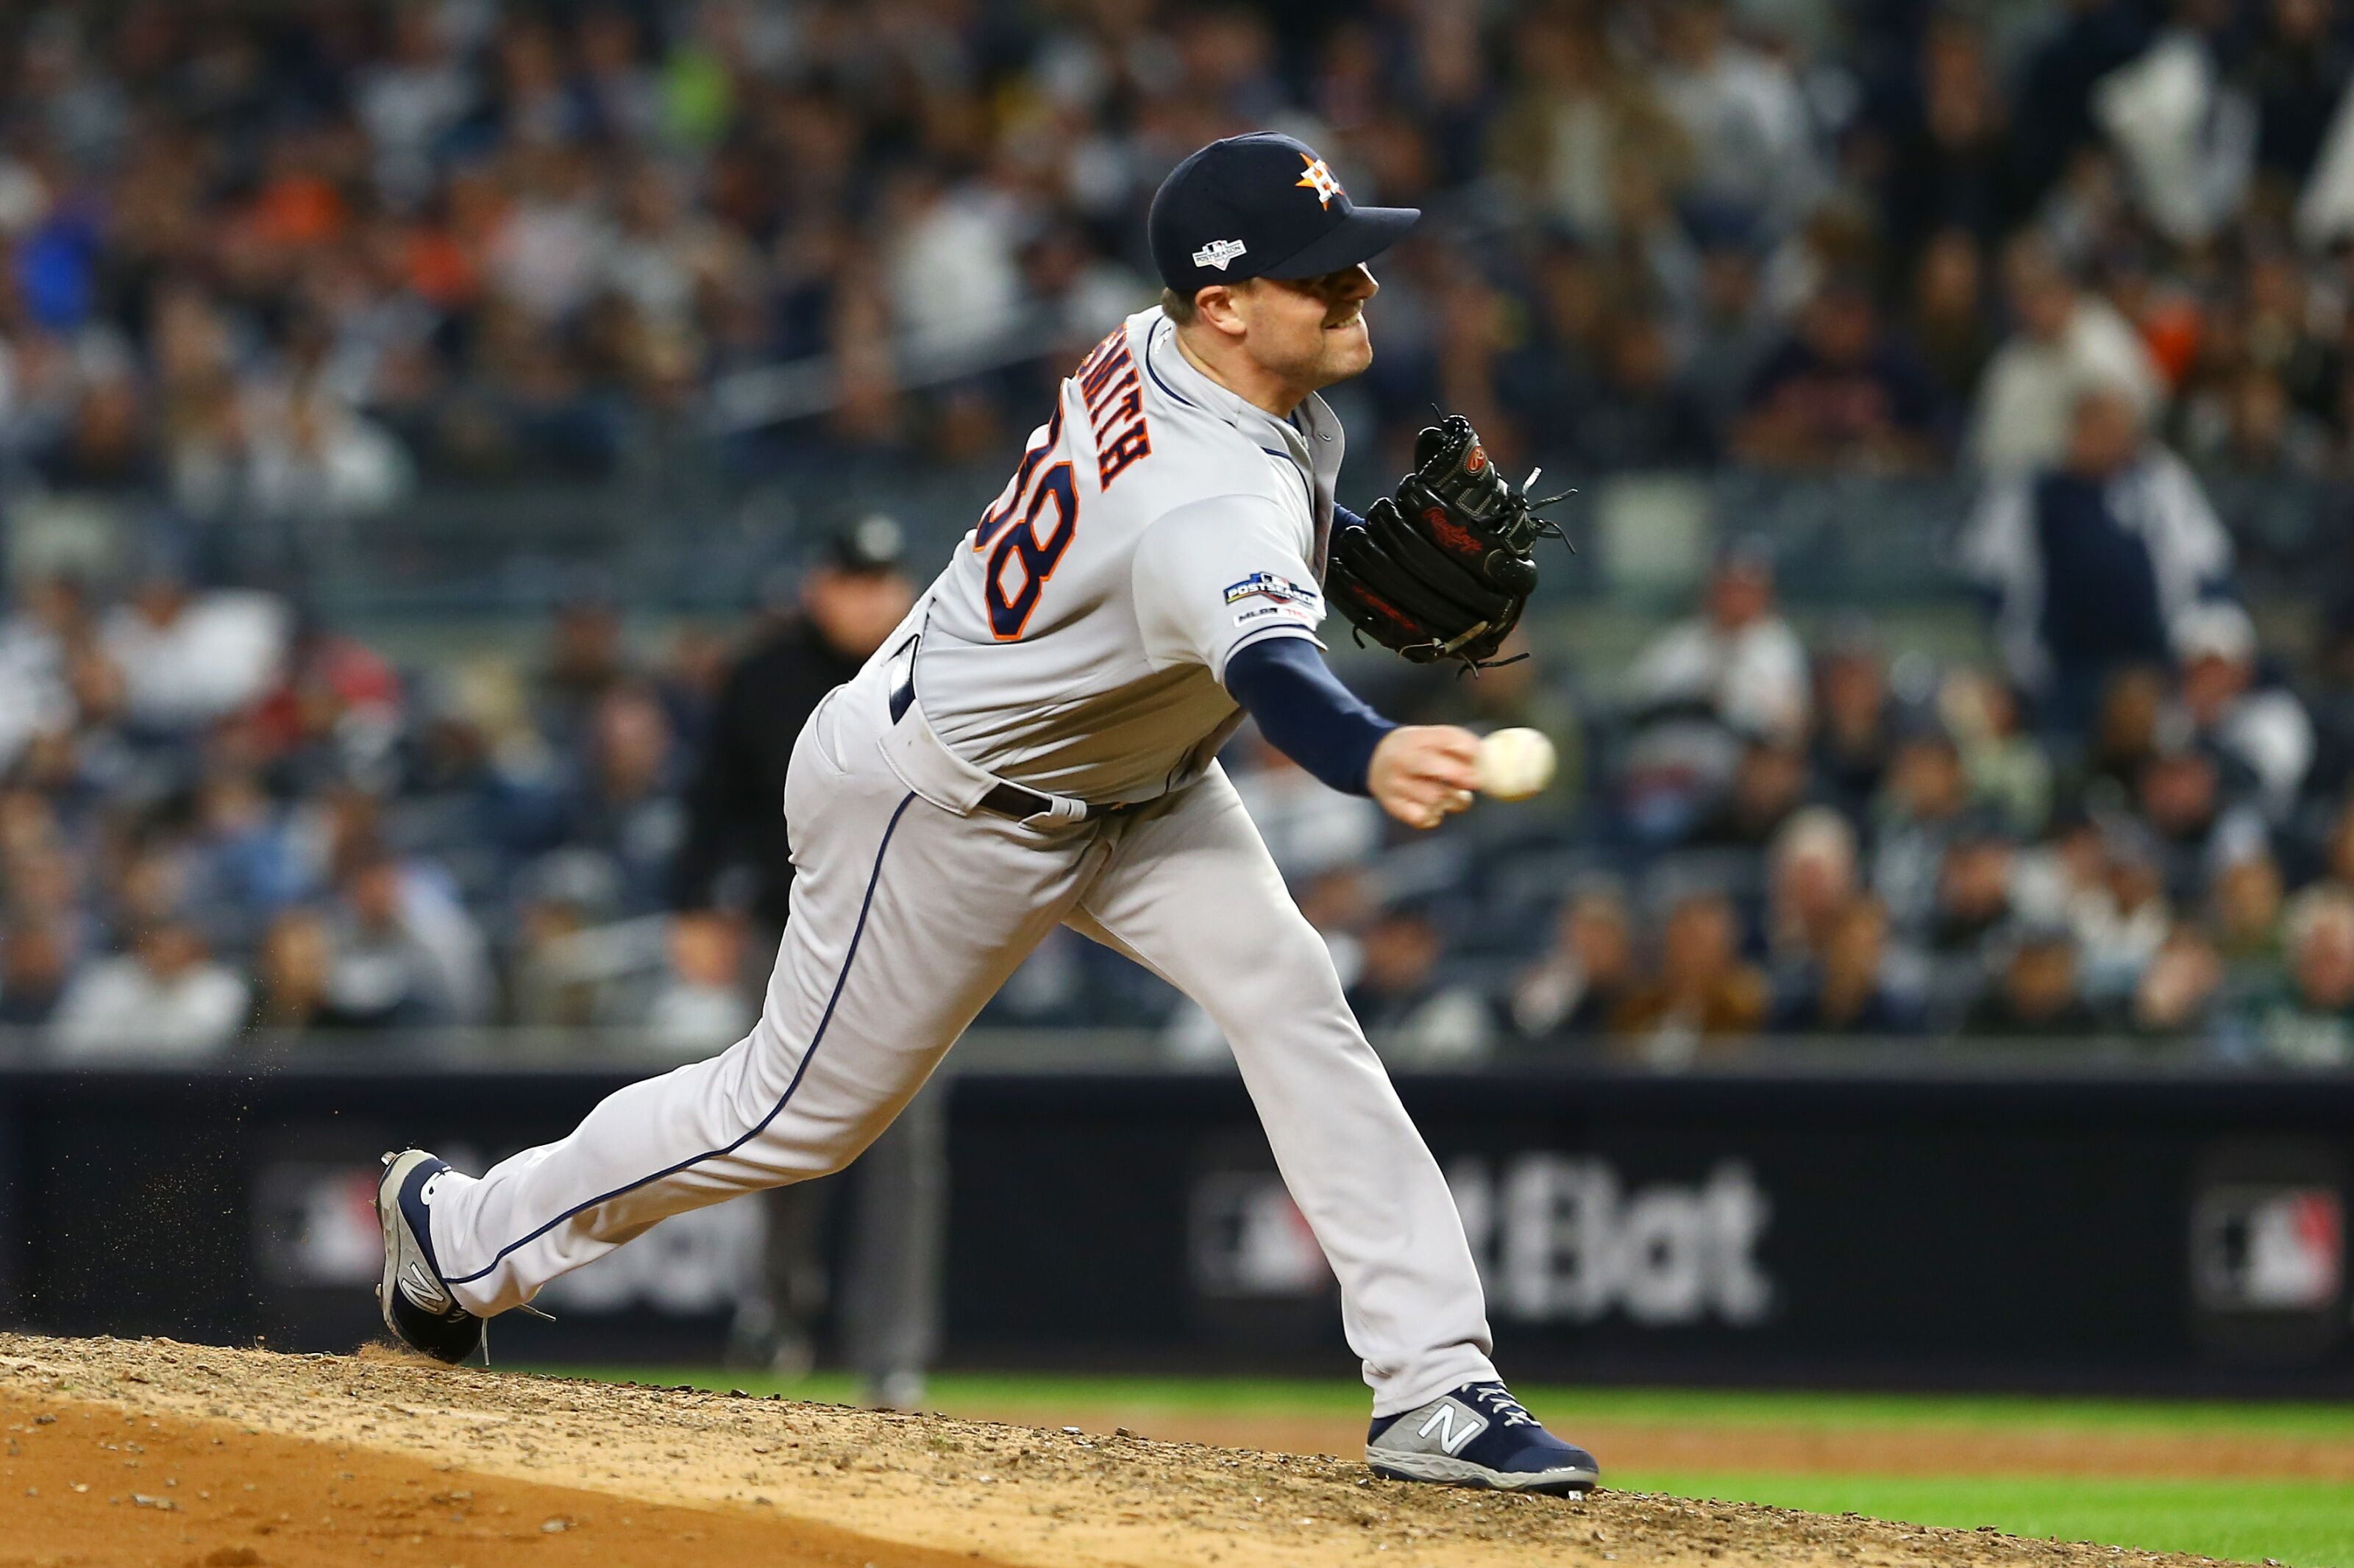 Yankees: Three free agent relievers they should consider pursuing